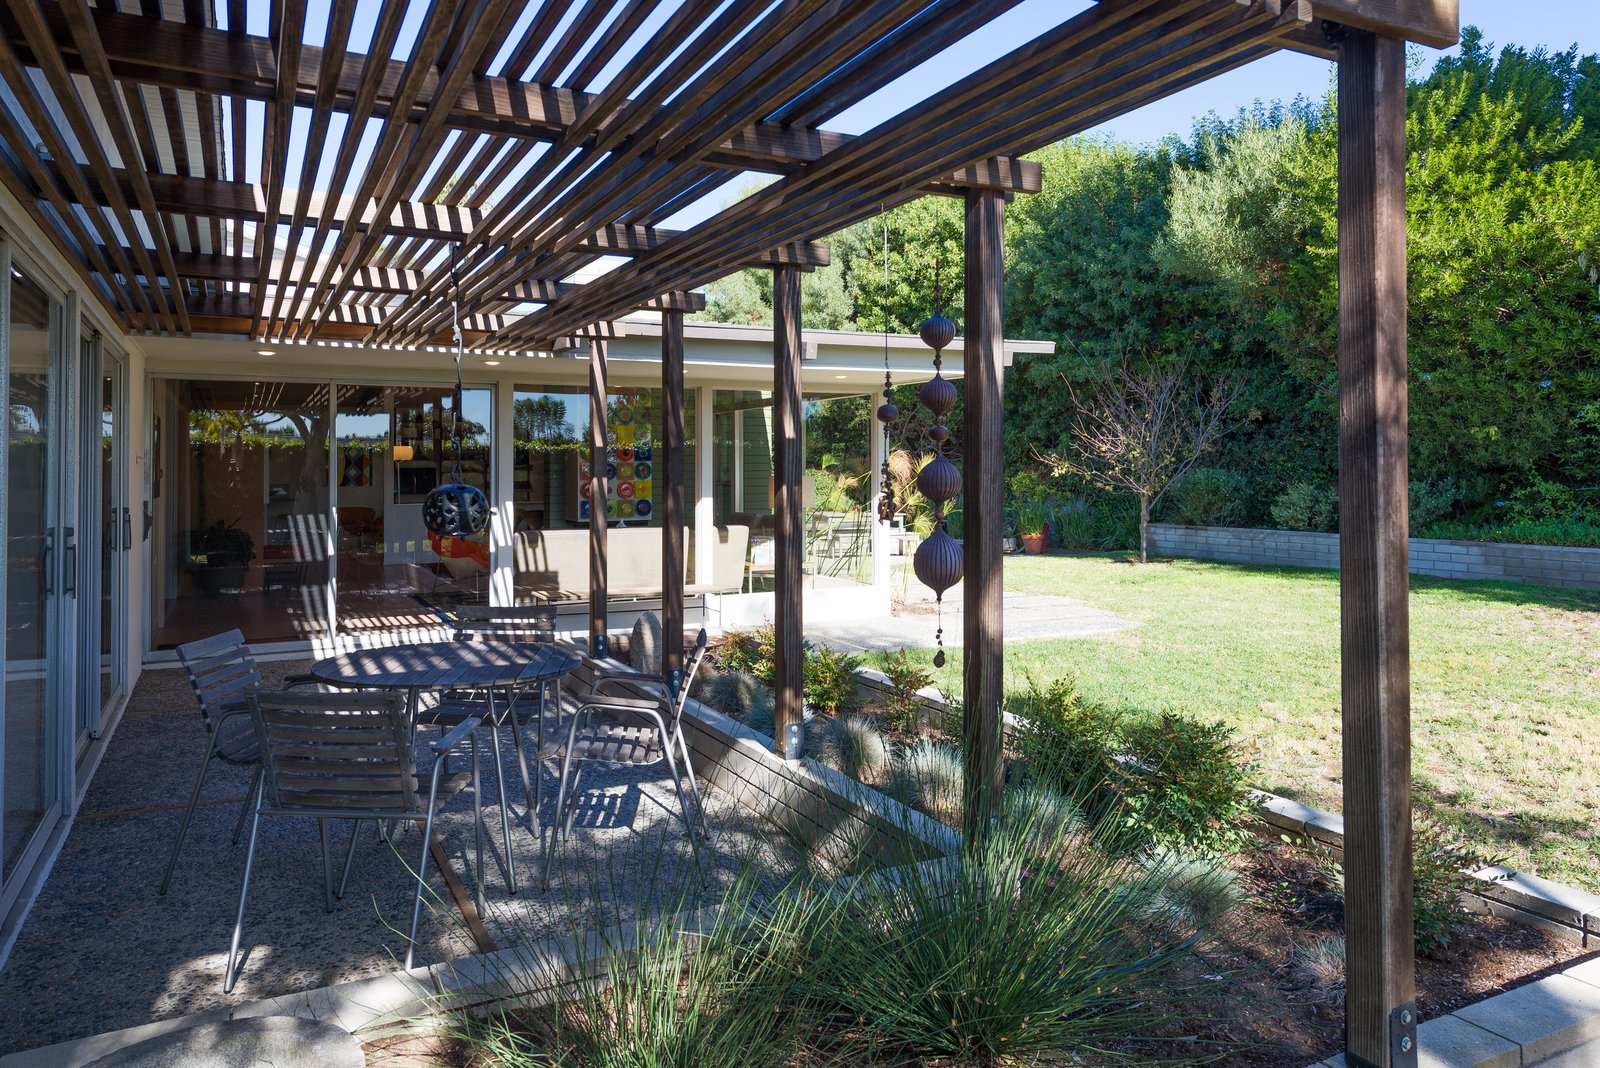 Outdoor, Back Yard, Walkways, Grass, Small, Side Yard, Raised Planters, Planters, and Trees  Best Outdoor Back Yard Planters Photos from An Immaculate Midcentury Abode in San Diego Asks $1.55M